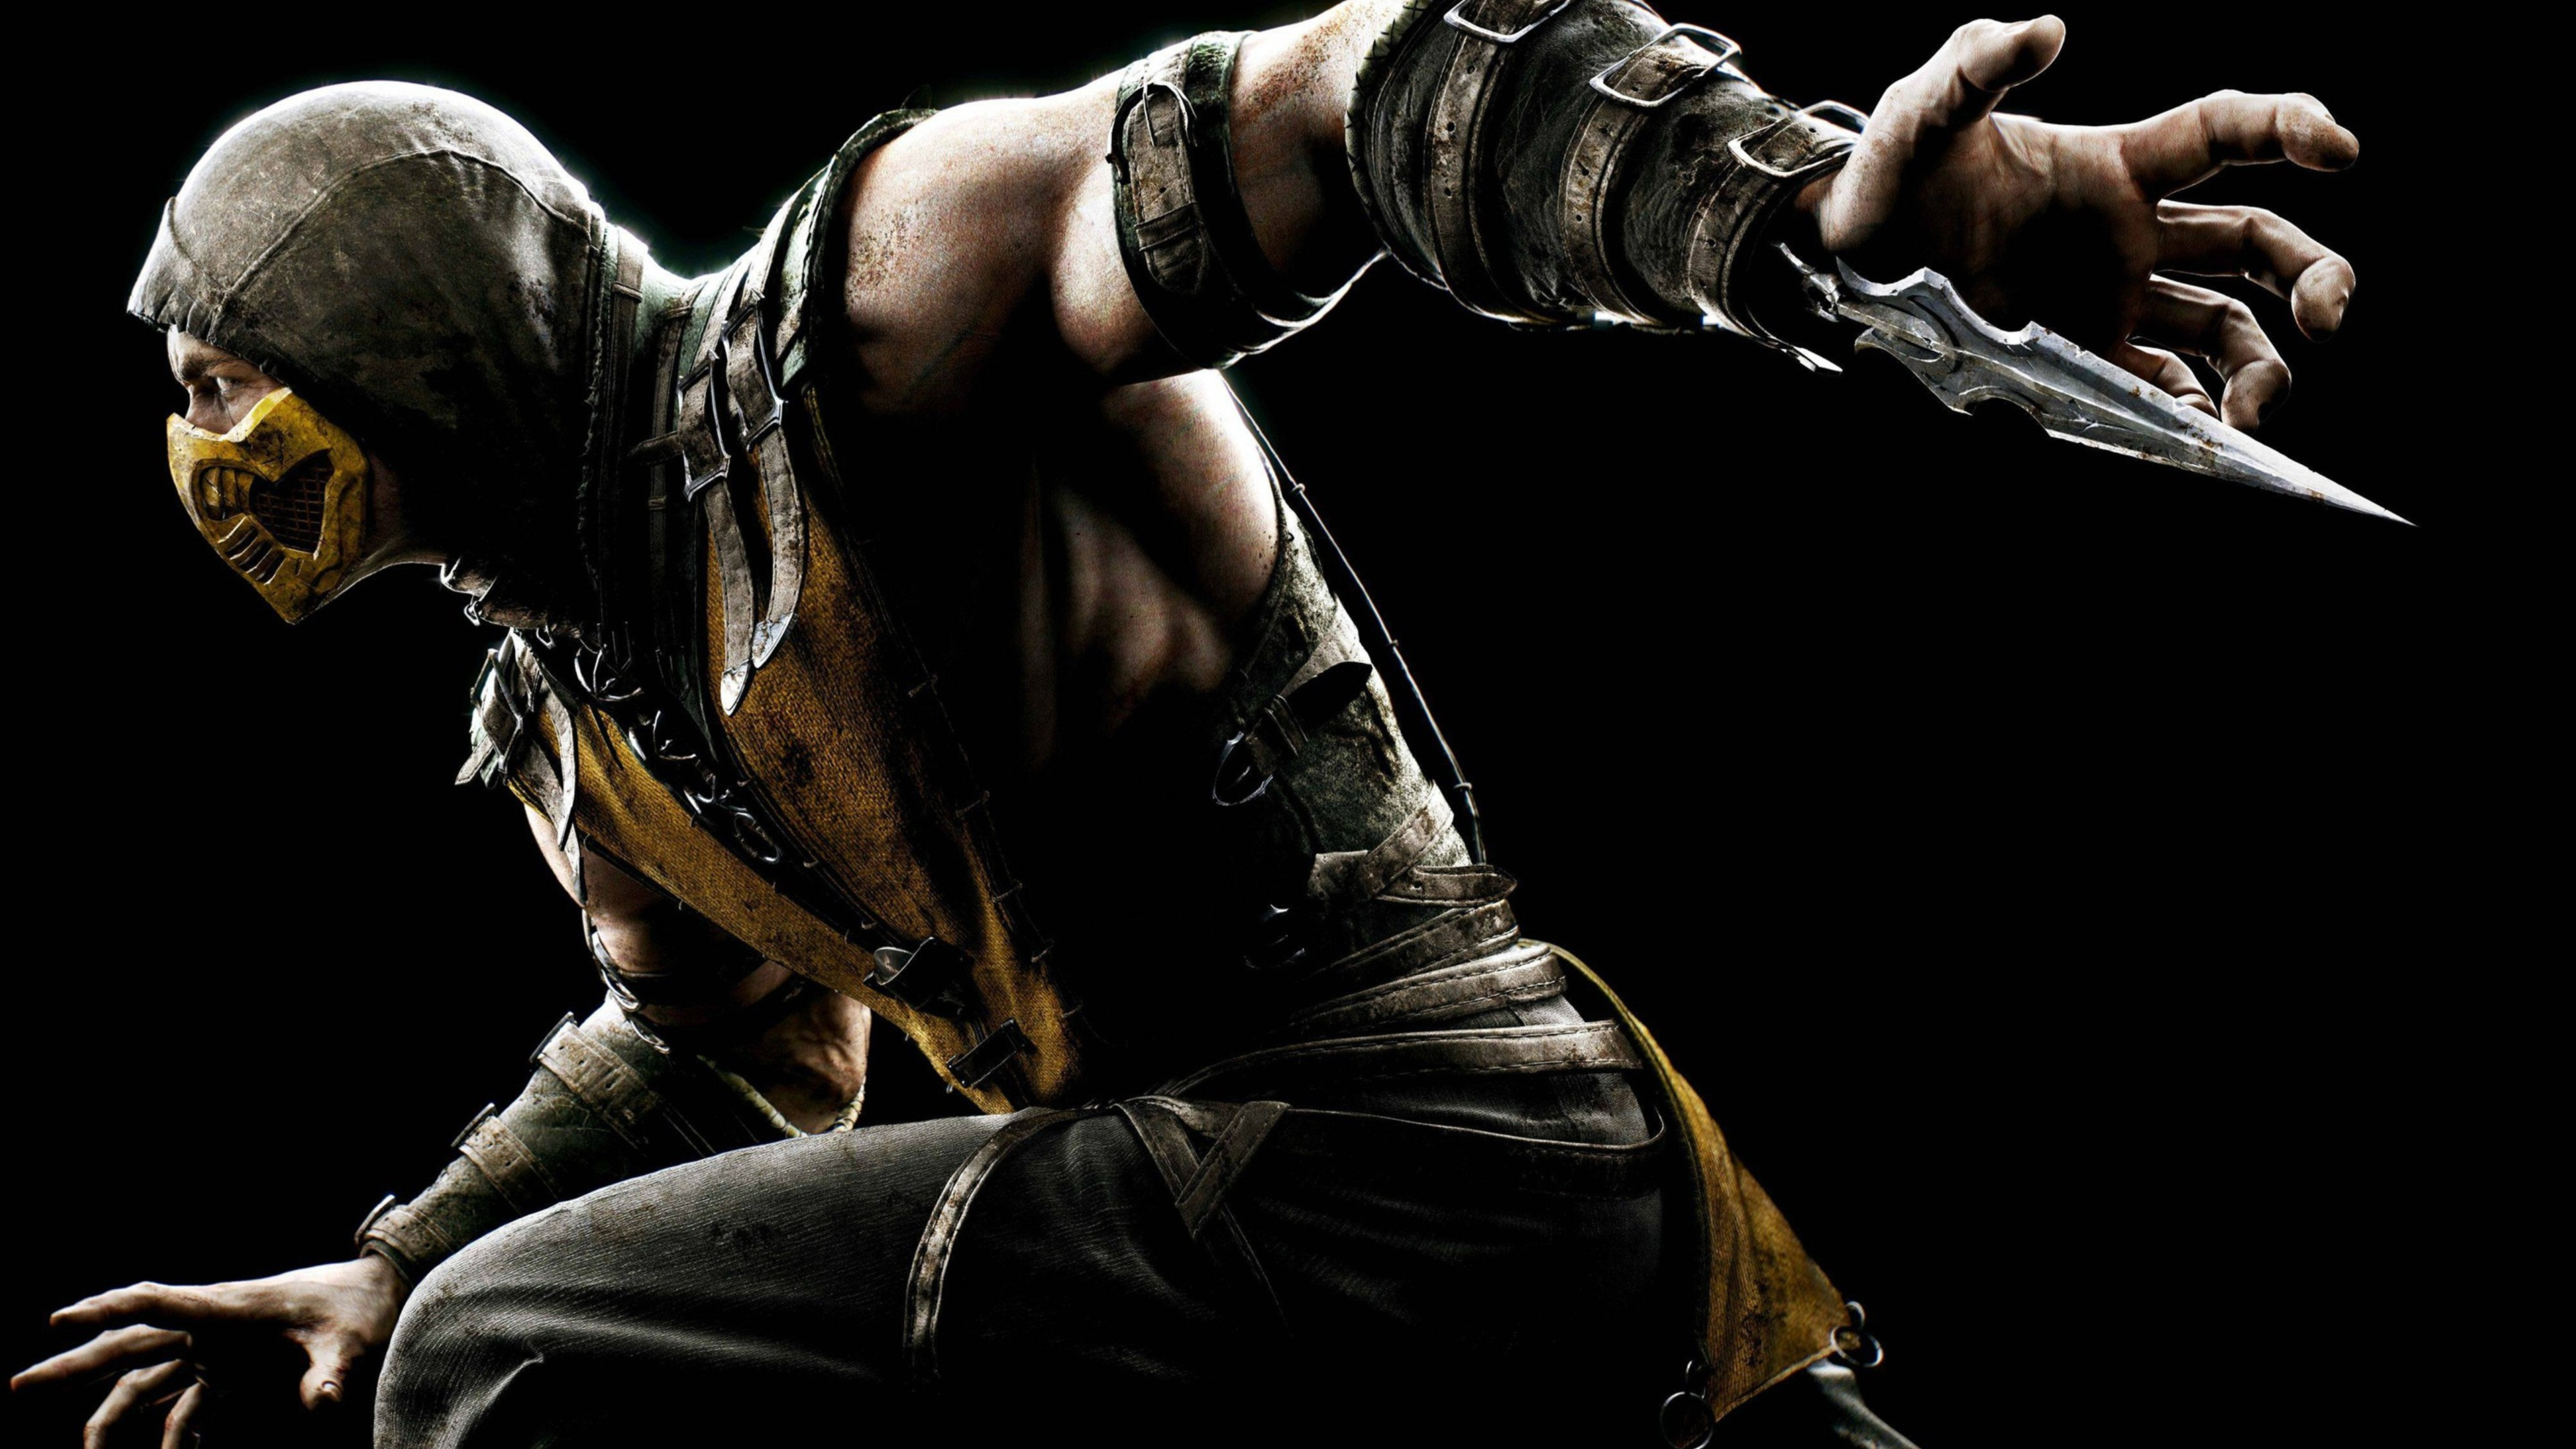 Wallpaper 4k Mortal Kombat X Scorpion Games Wallpapers Mortal